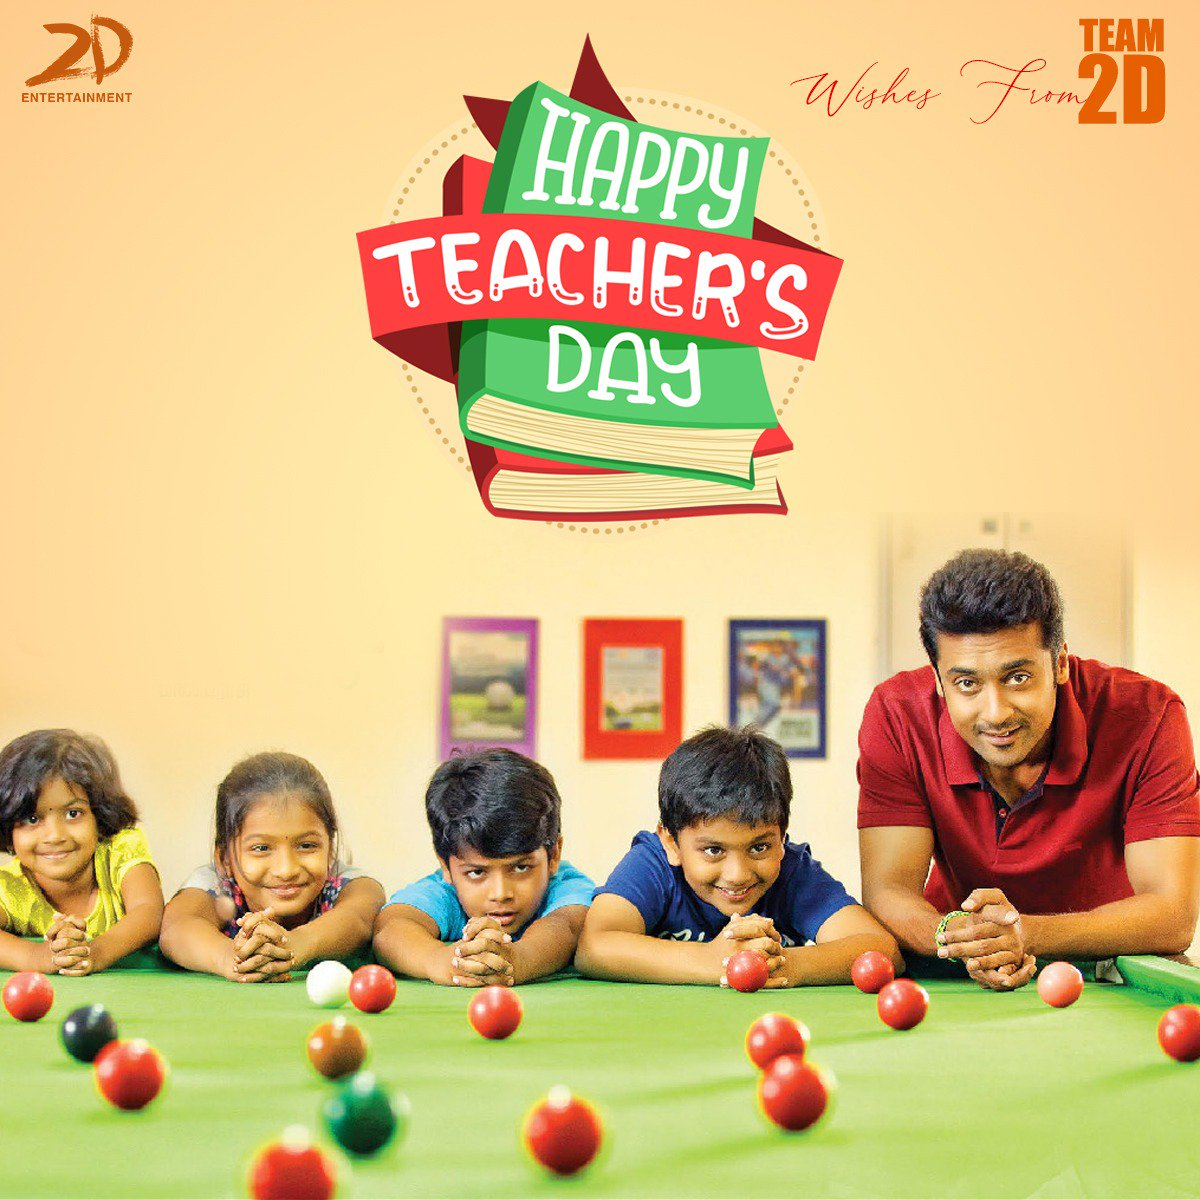 happyteachersday hashtag on Twitter